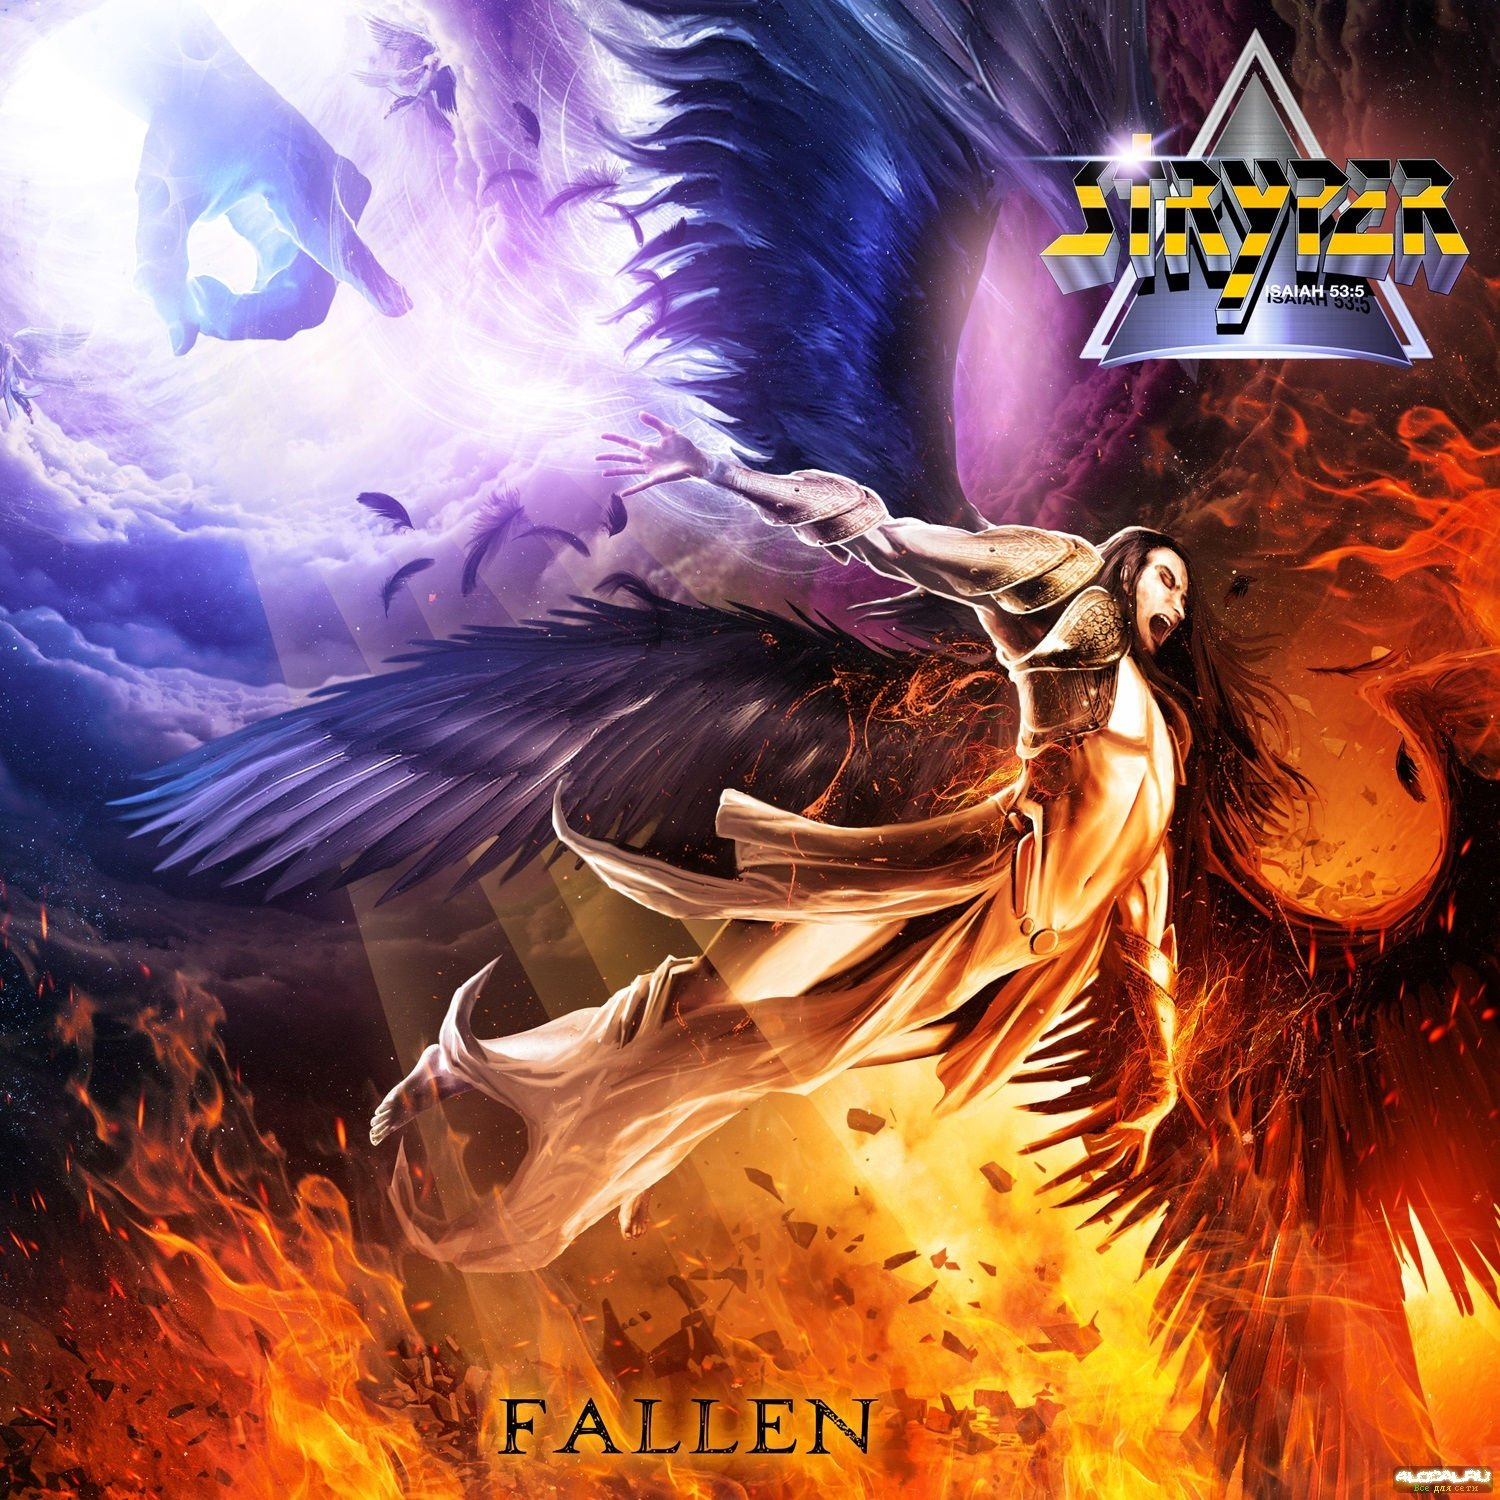 Stryper – Fallen Review